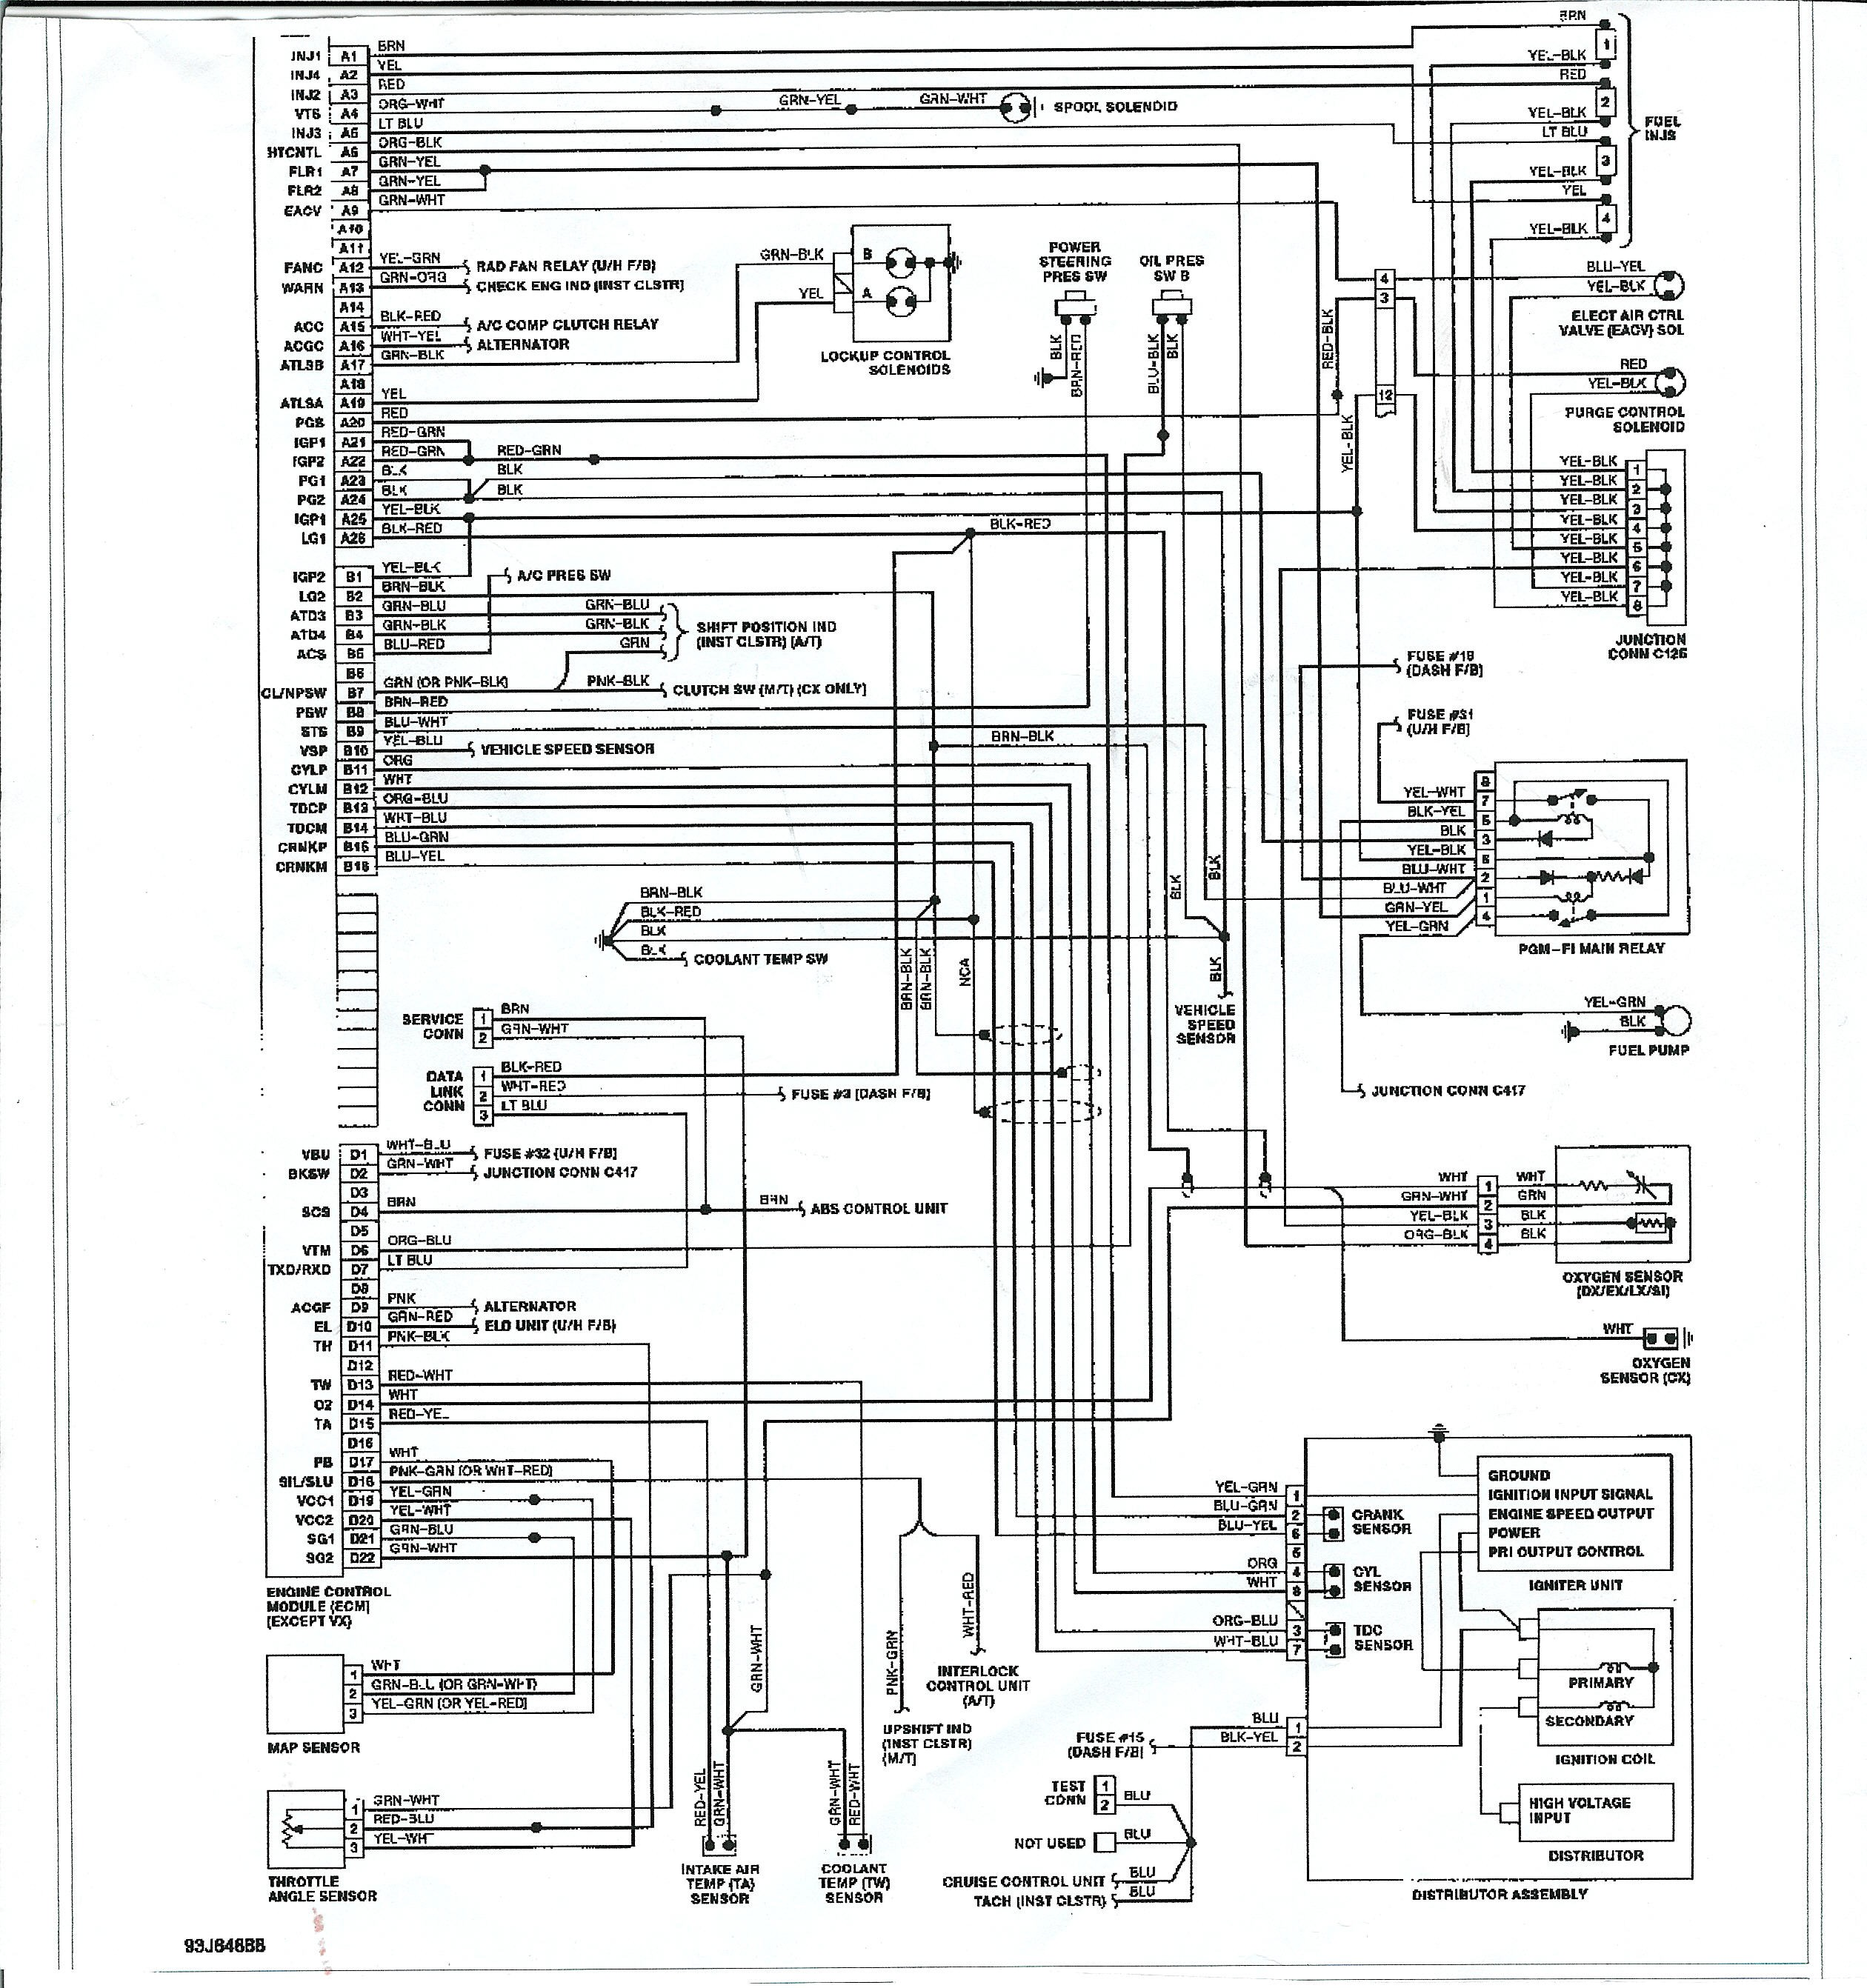 08 Toyota 4runner Wiring Diagram - Auto Electrical Wiring ... on